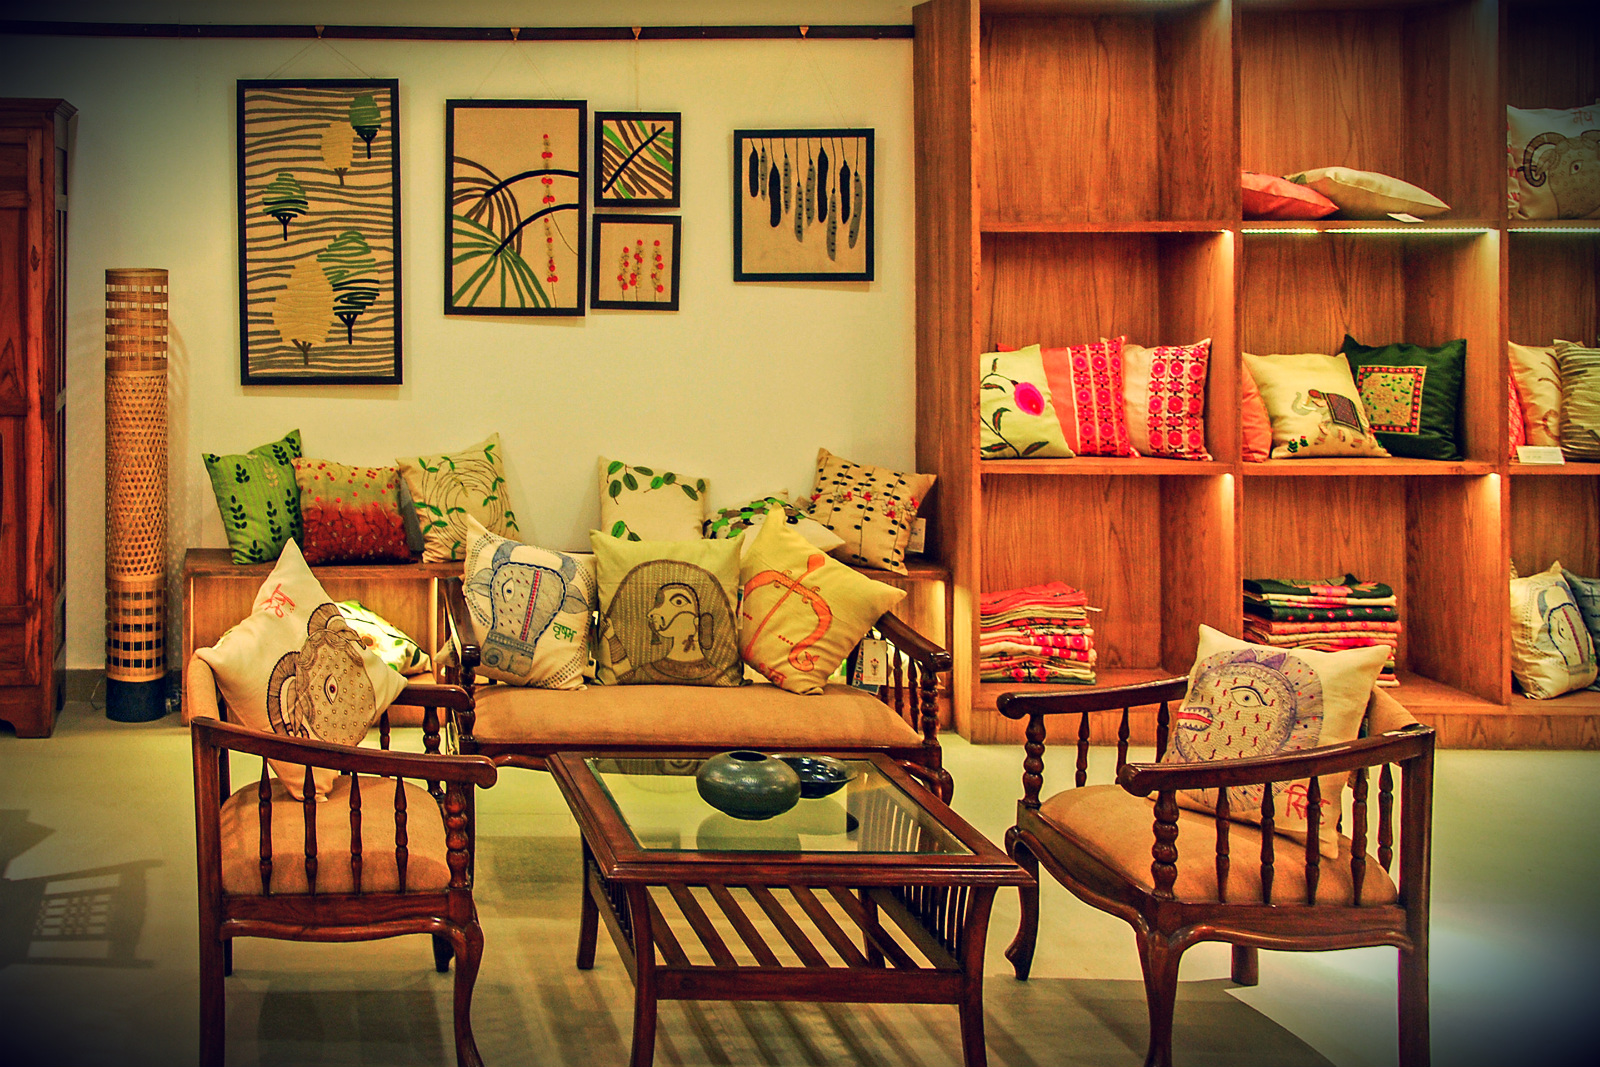 My decorative indian august store interior 1 for Diy handicraft items